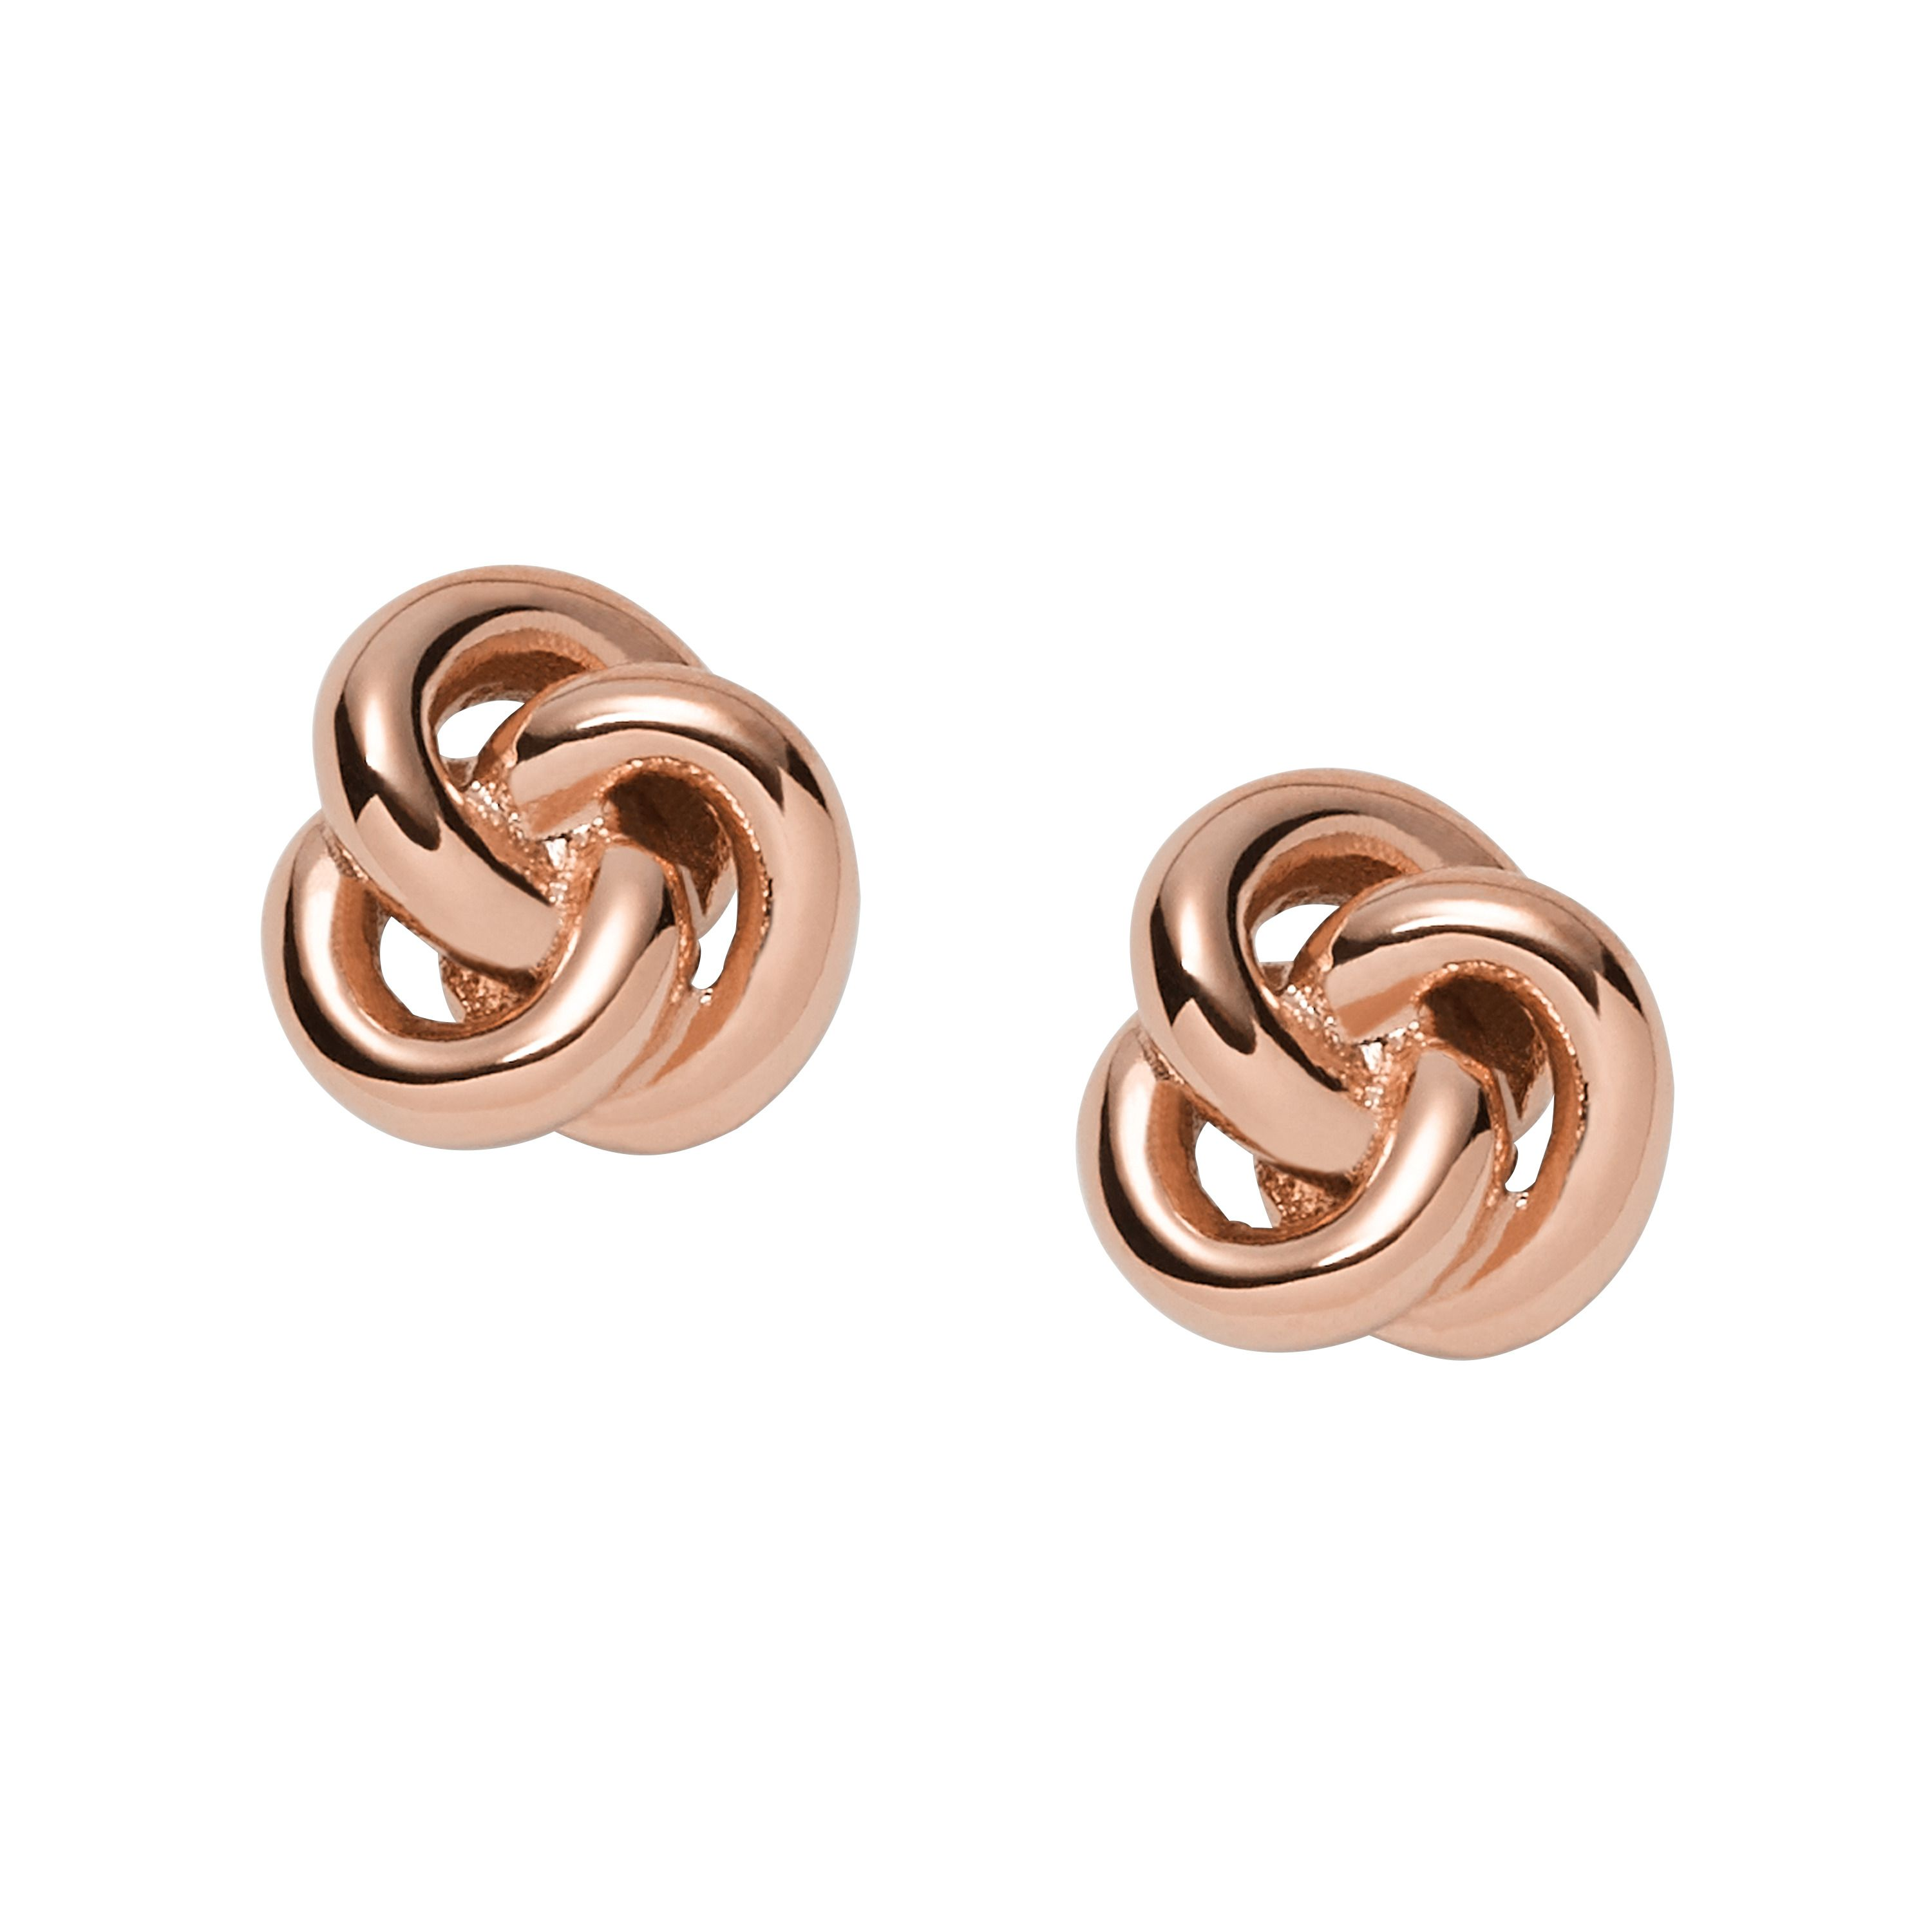 Fossil Jf01364791 ladies earrings, Rose Gold